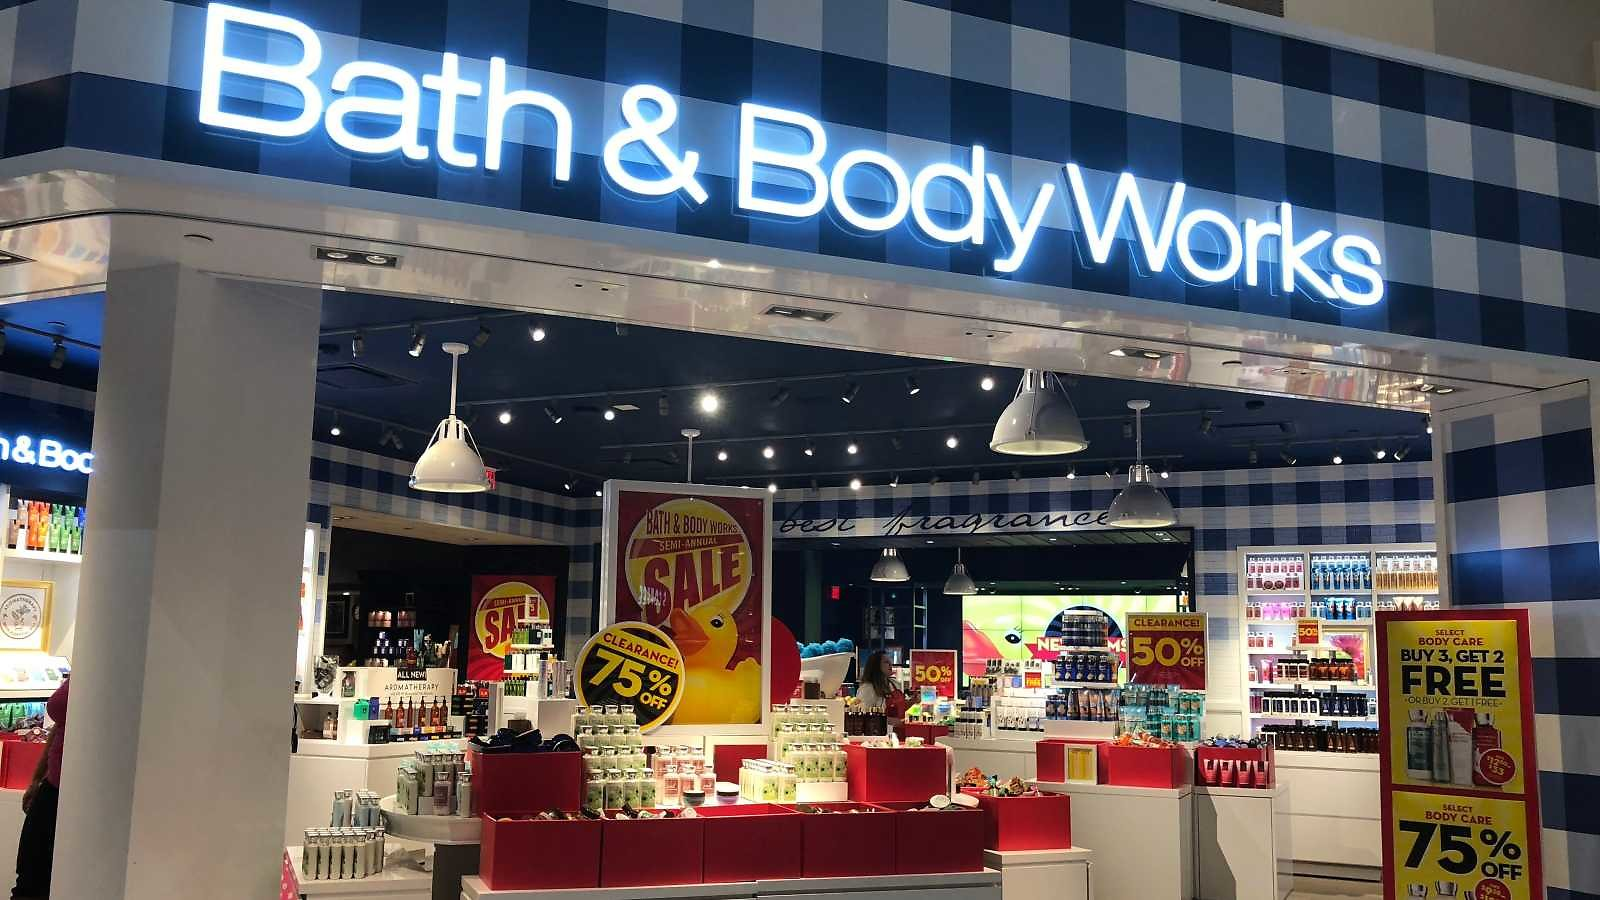 Bath & Body Works' Annual Candle Day Sale Sold Out Online, But $9.95 Candles Available in Stores Through Sunday